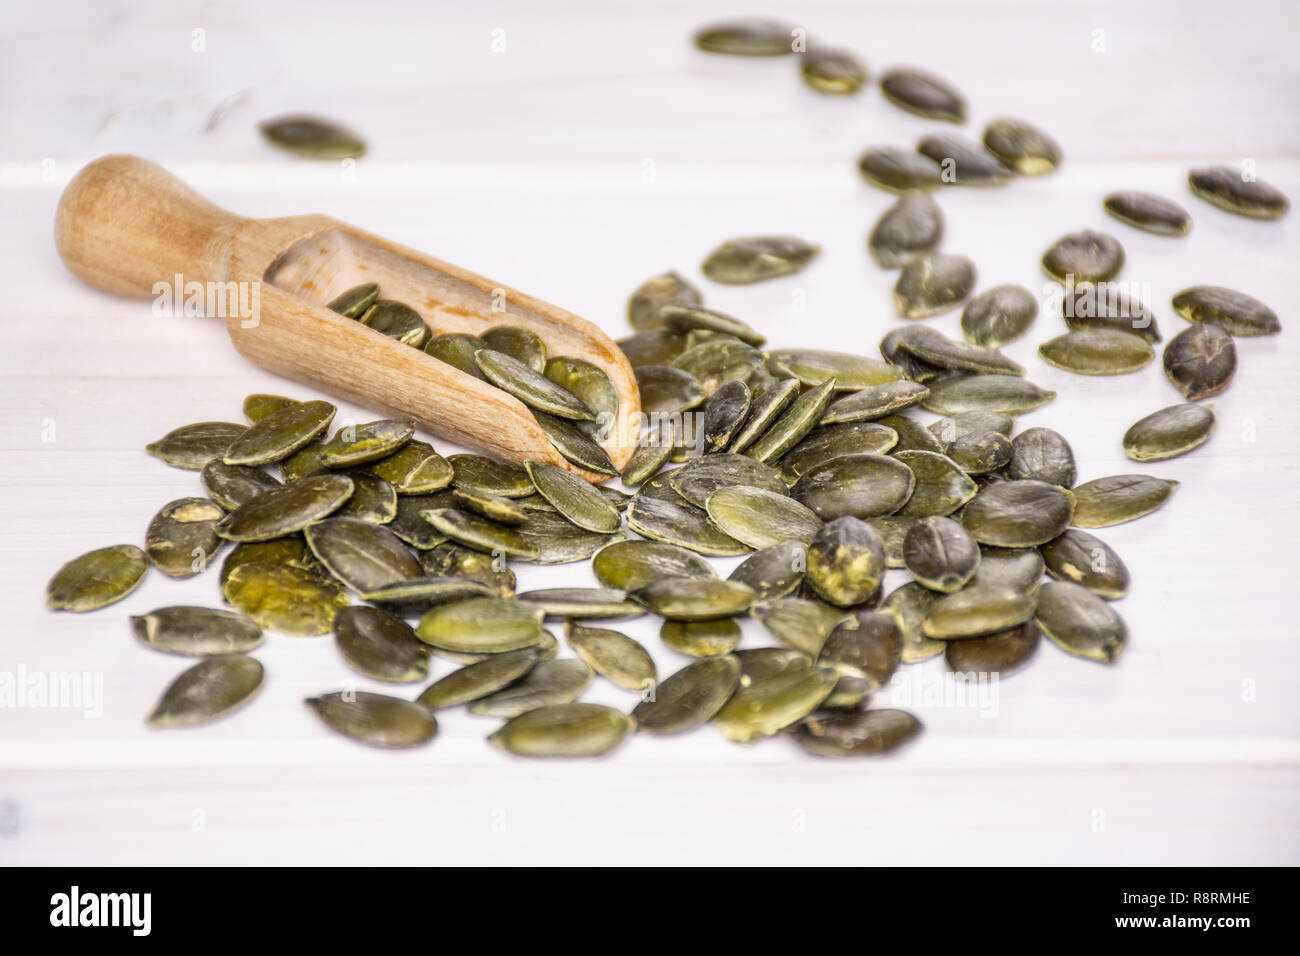 Lot of whole hulled pumpkin seeds with wooden scoop on white wood Stock Photo